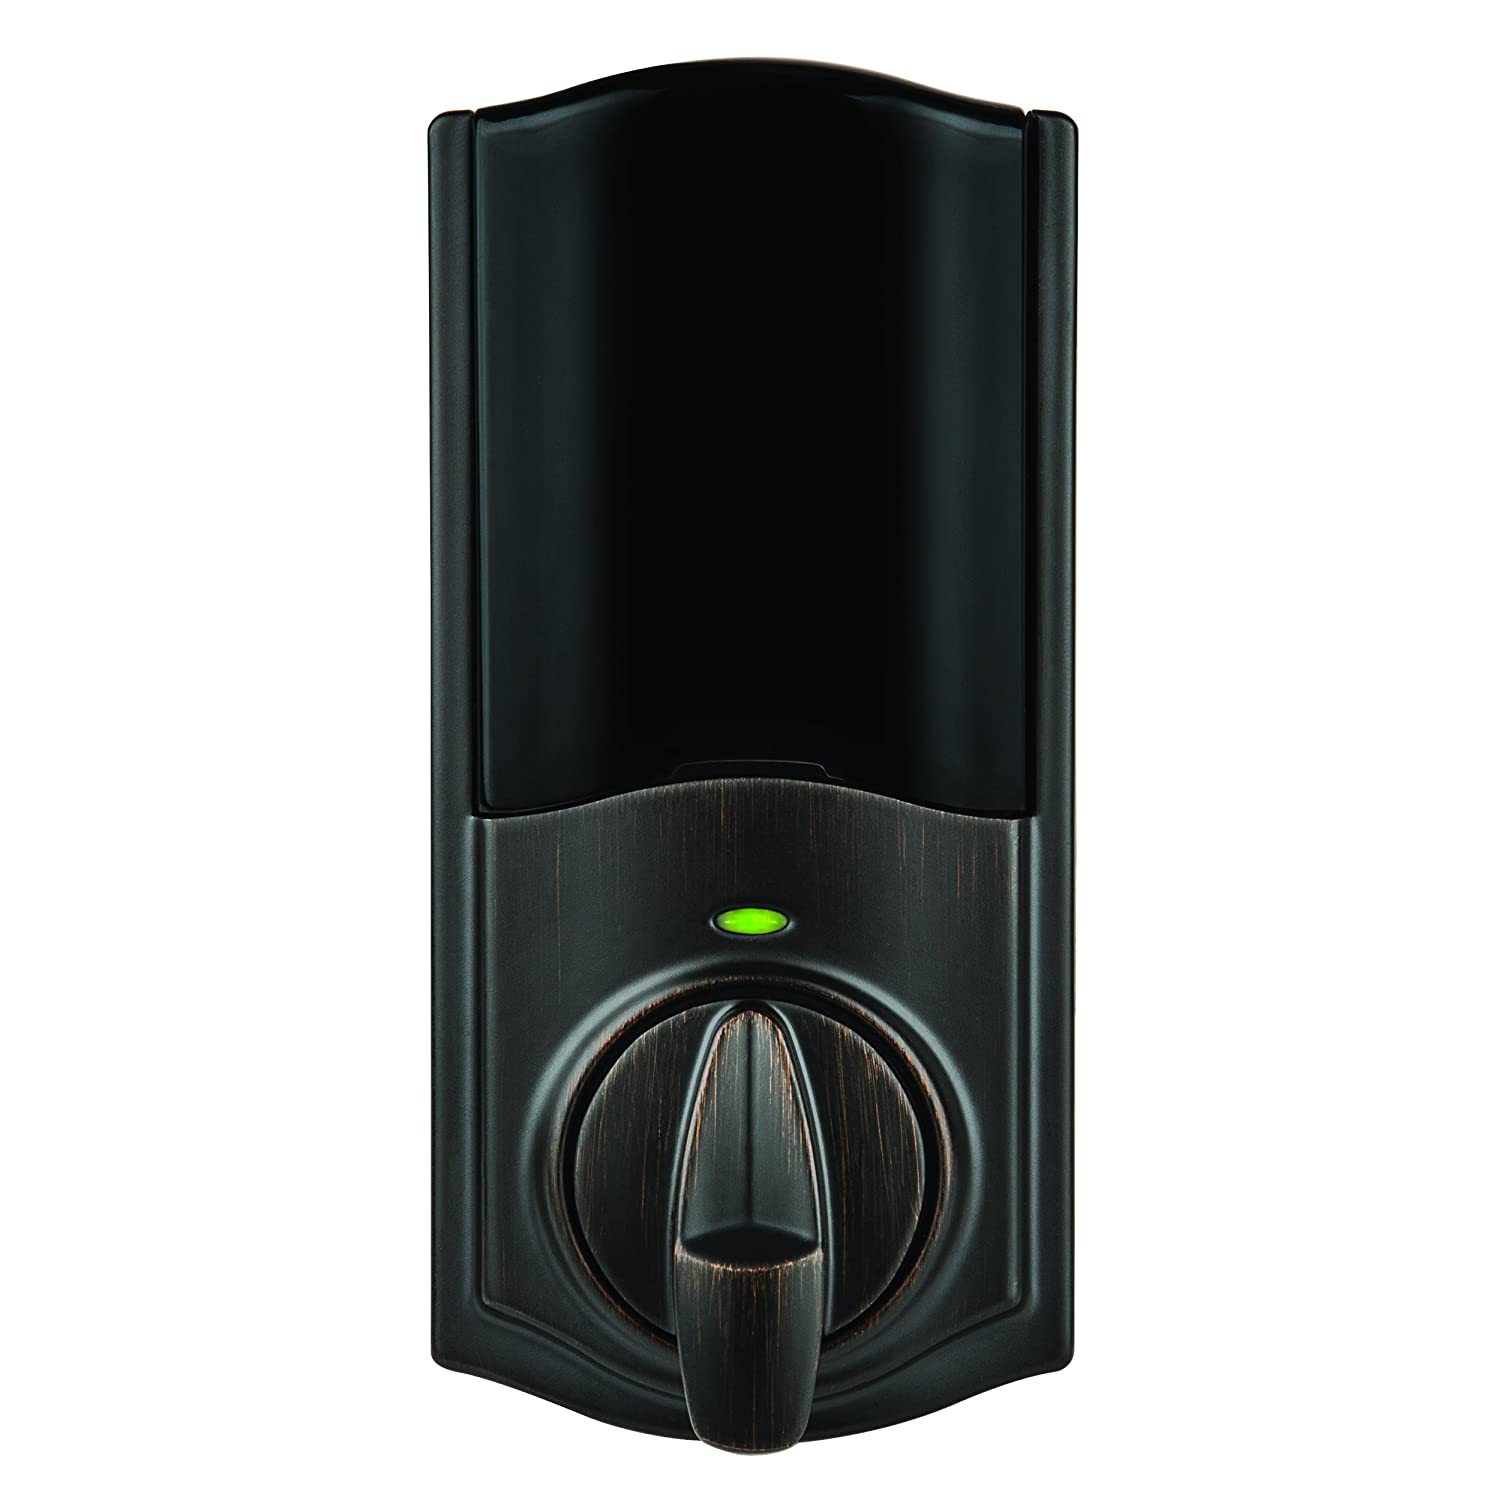 Kwikset Kevo Convert Smart Lock Conversion Kit, Works with Amazon Alexa via Kevo Plus, in Venetian Bronze